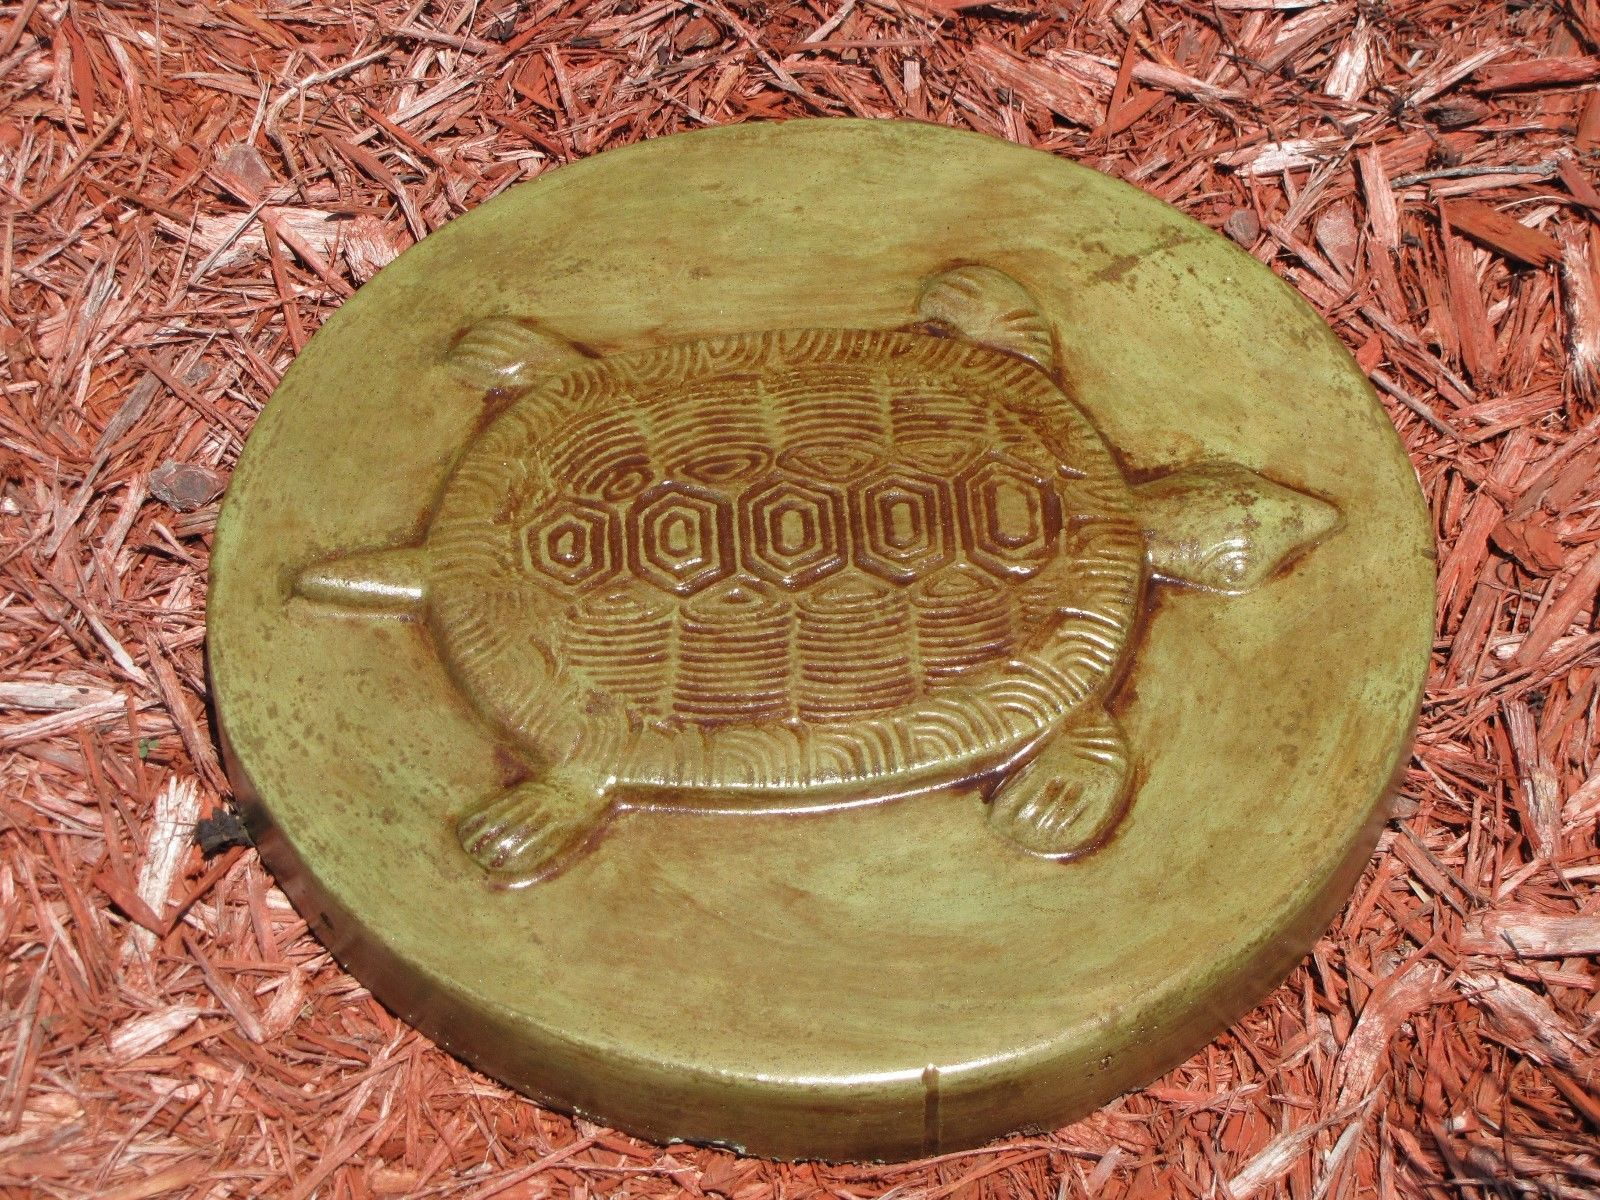 3 Turtle Design Concrete or Cement 16x2 Garden Path Stepping Stone Molds, Moulds